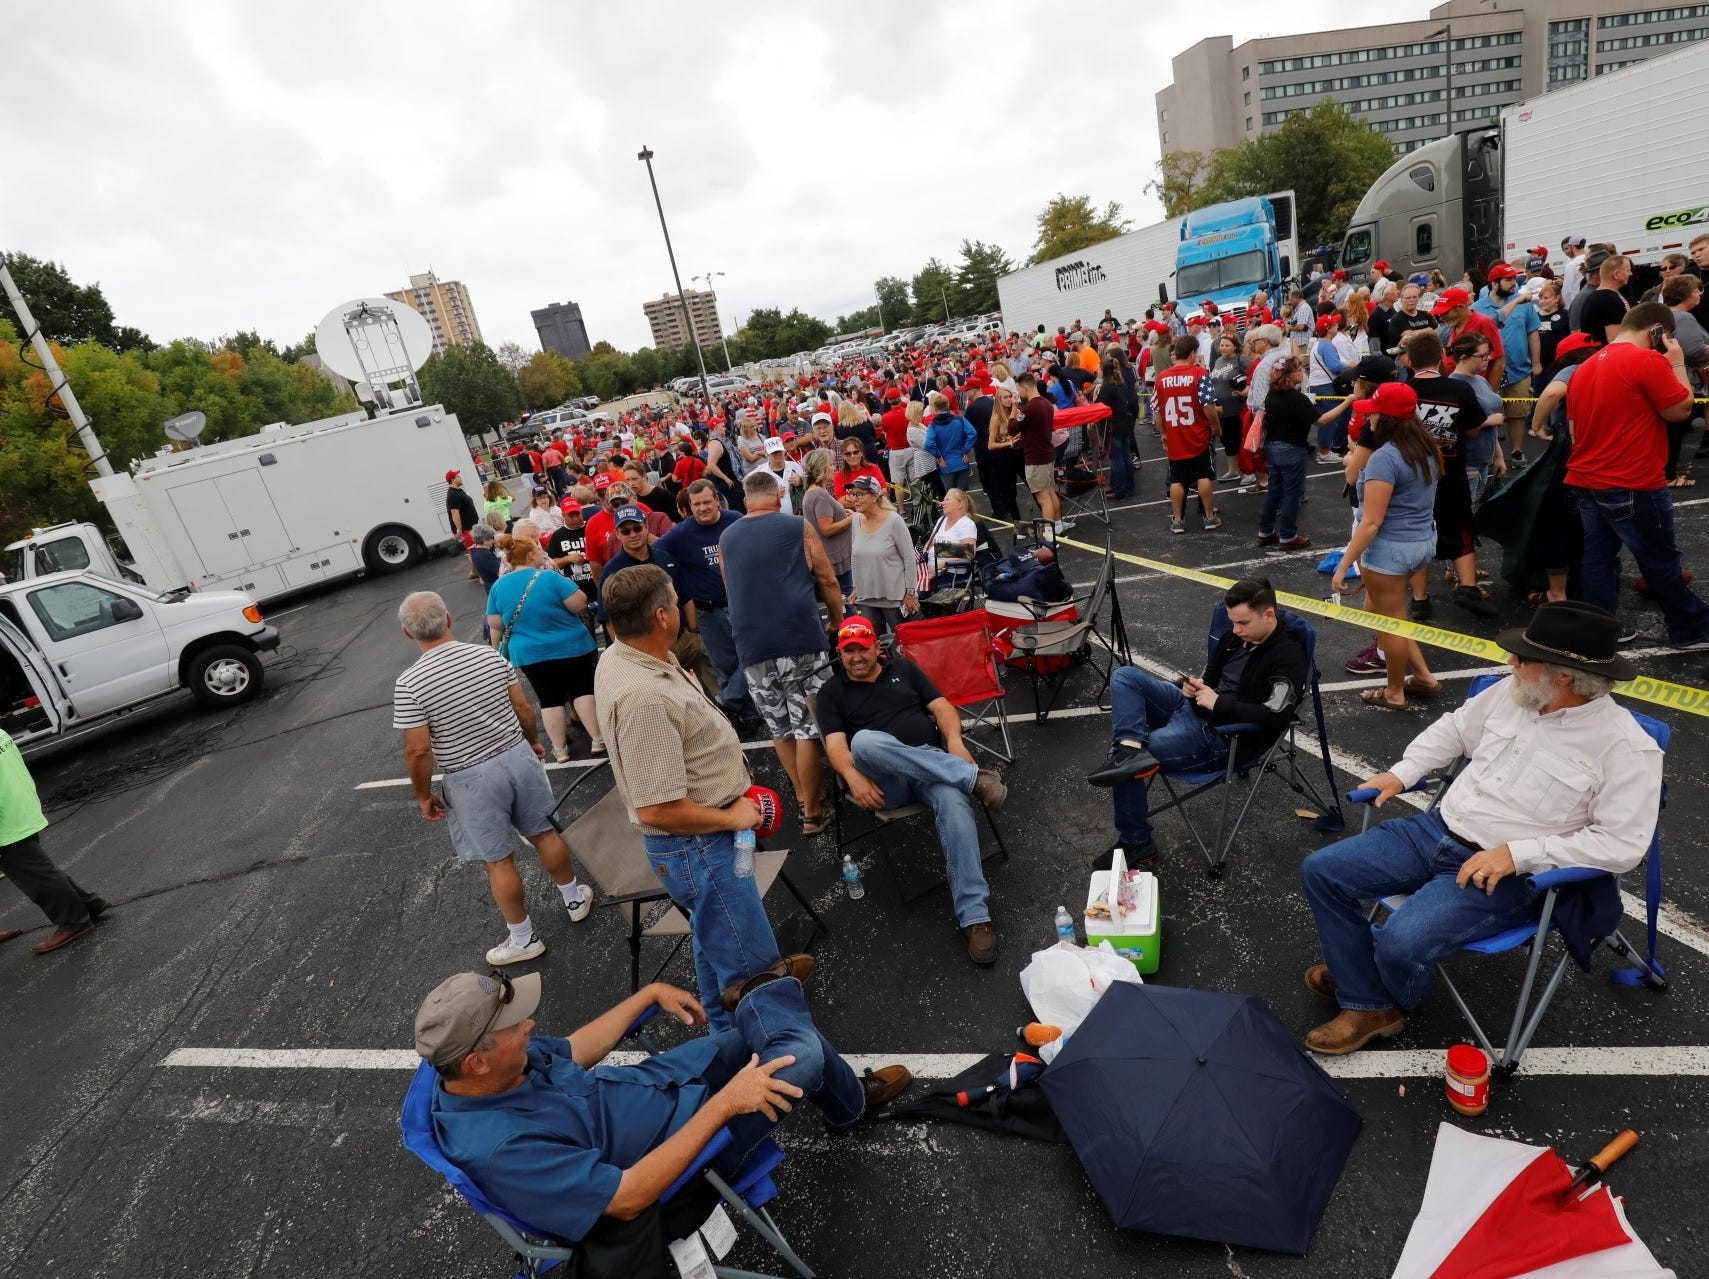 A large crowd awaits the arrival of President Trump outside JQH Arena in Springfield on Friday, Sept. 21, 2018.